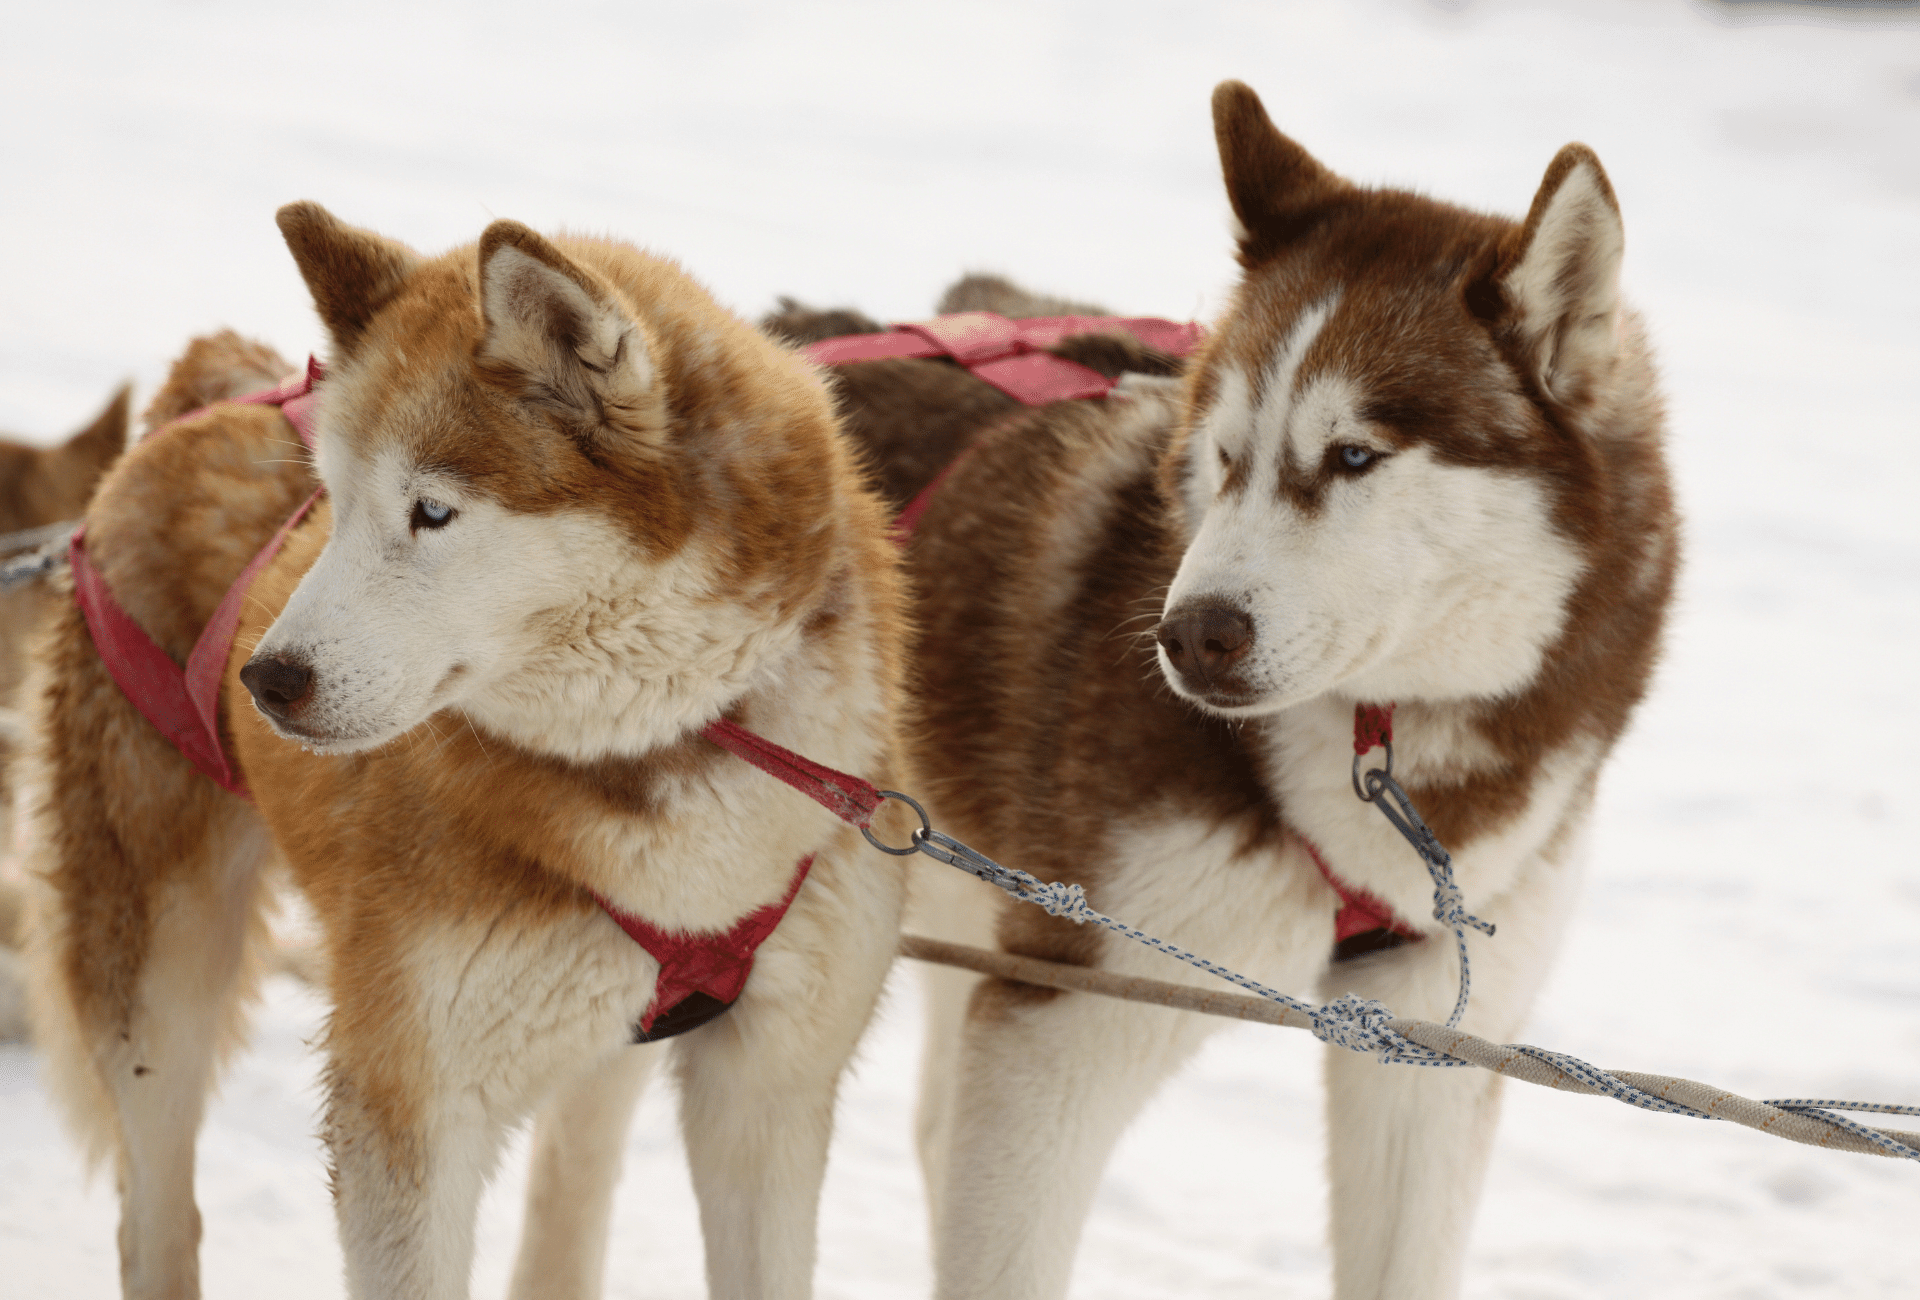 Two red Huskies working as sled dogs. One Husky's coat is copper red, the other Husky has a rich red coat.